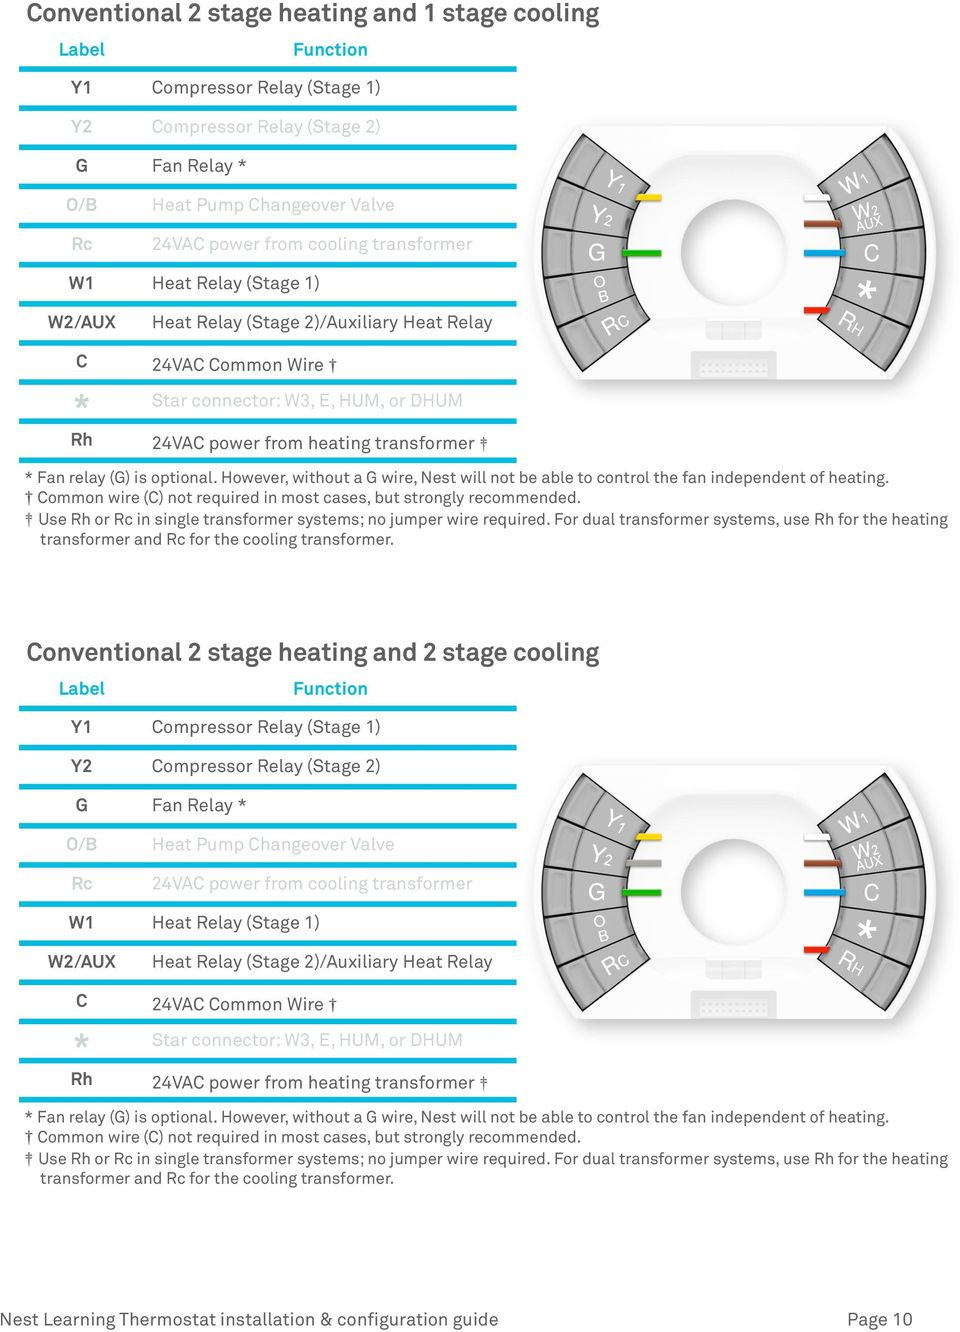 Nest Learning Thermostat Pro Installation & Configuration Guide - Pdf - Nest 3 Wiring Diagram Heat Pump